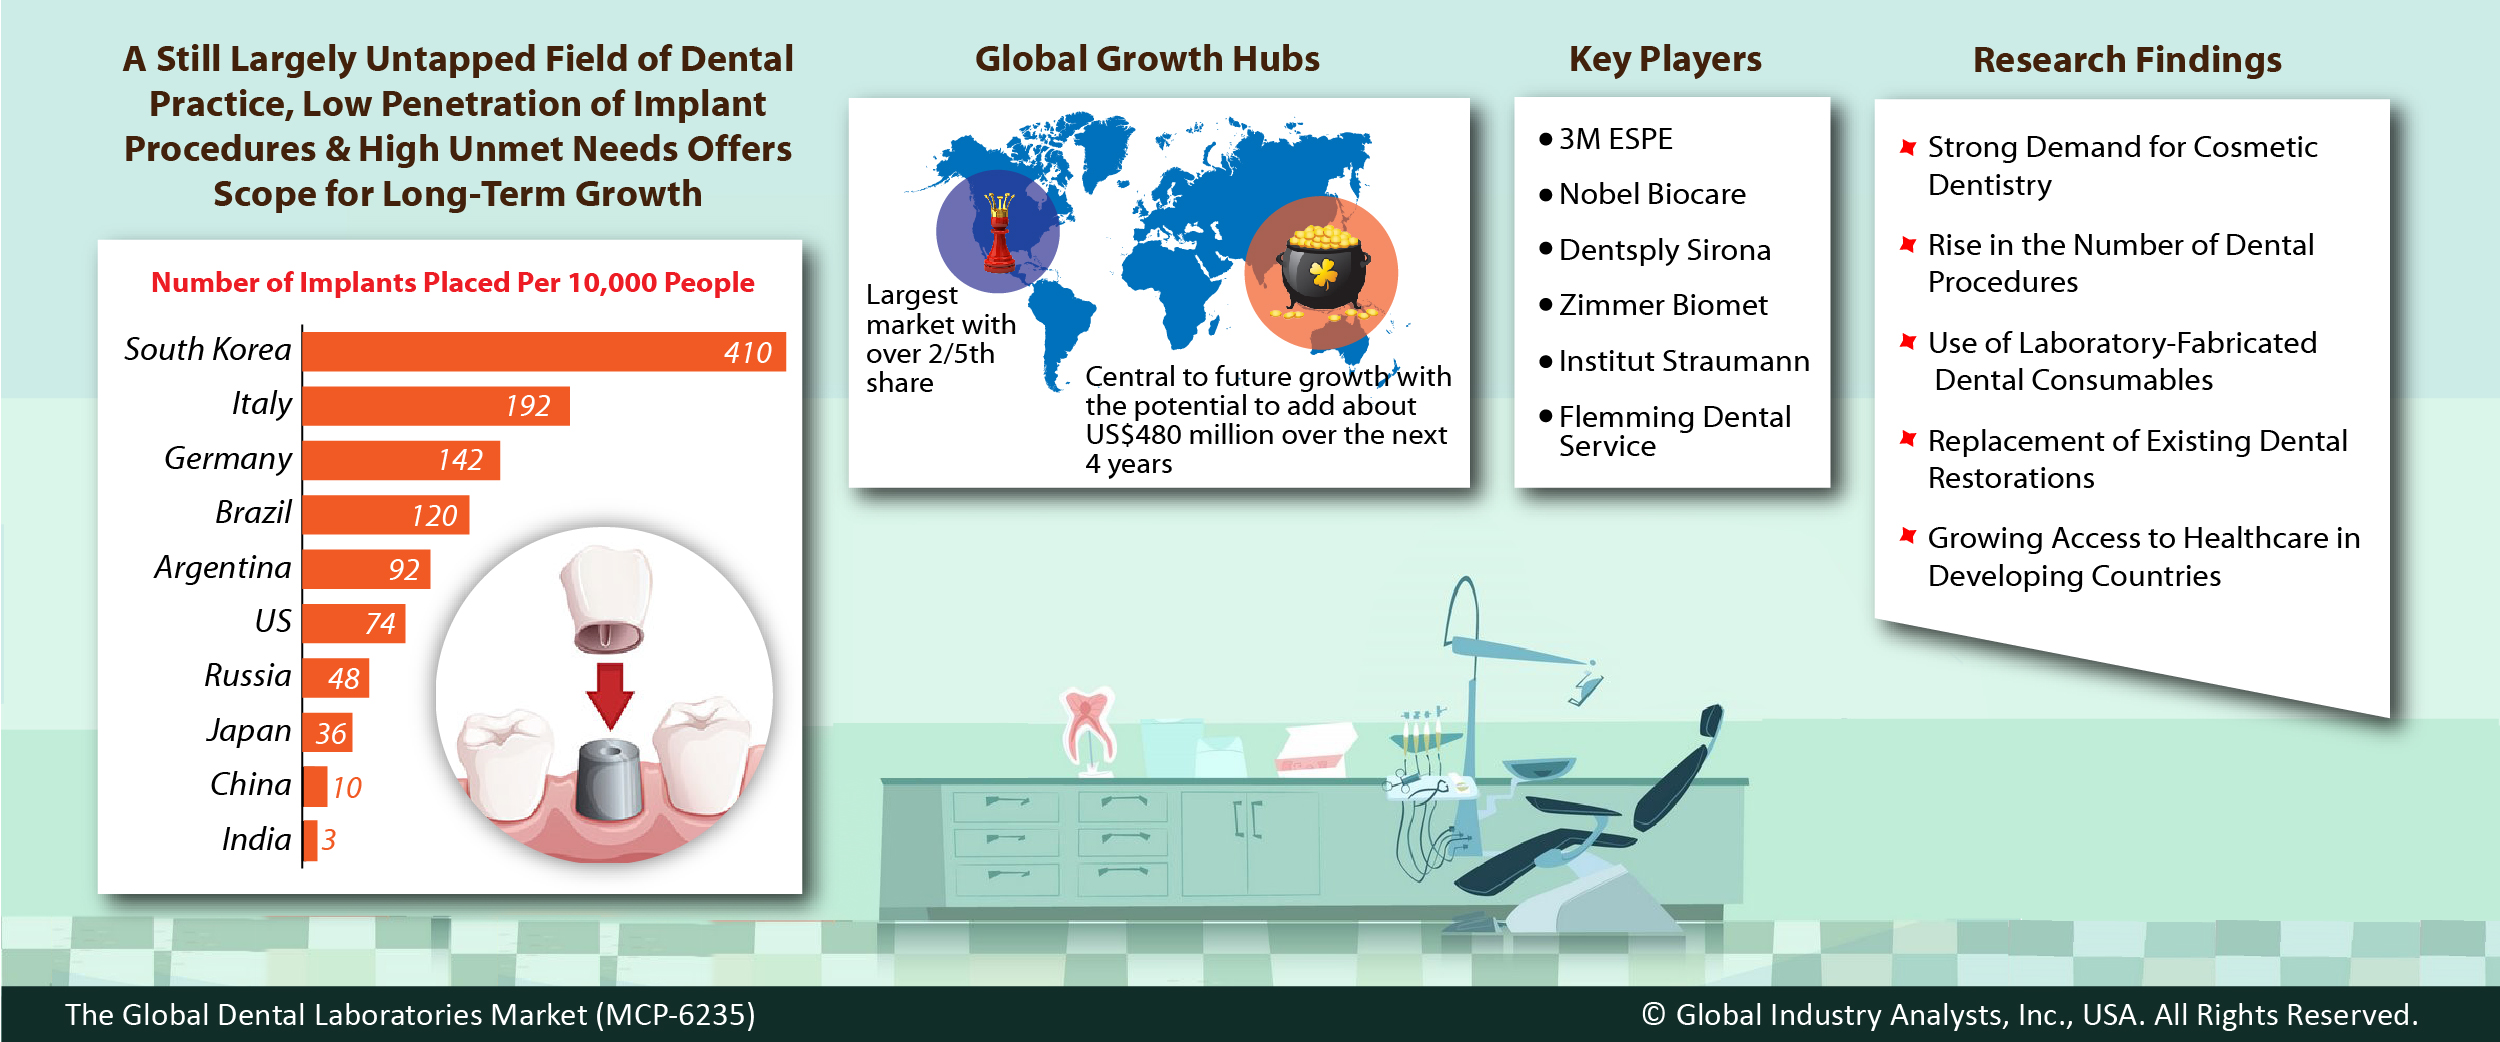 Global home healthcare market set for rapid growth to reach around